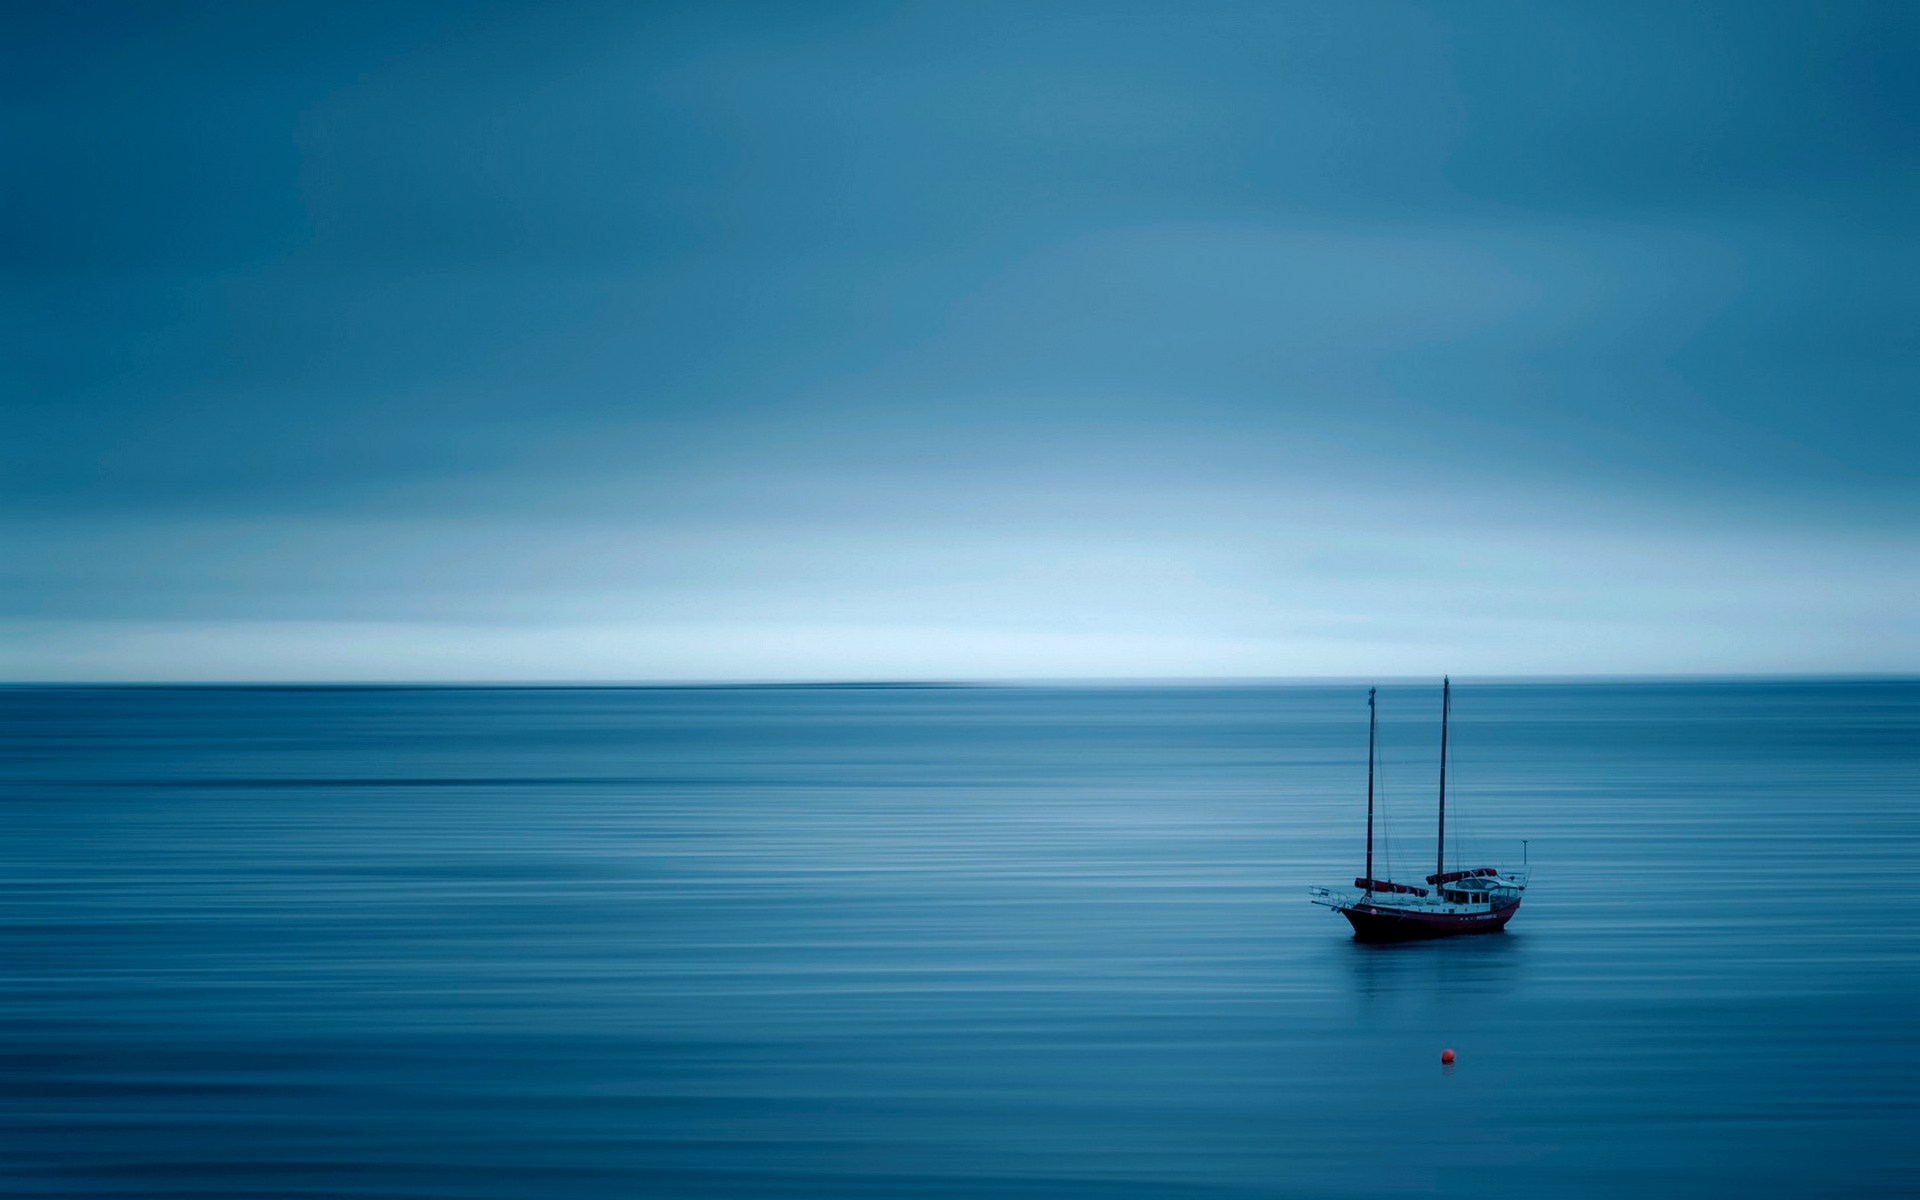 Related Wallpapers. Calm Ocean ...